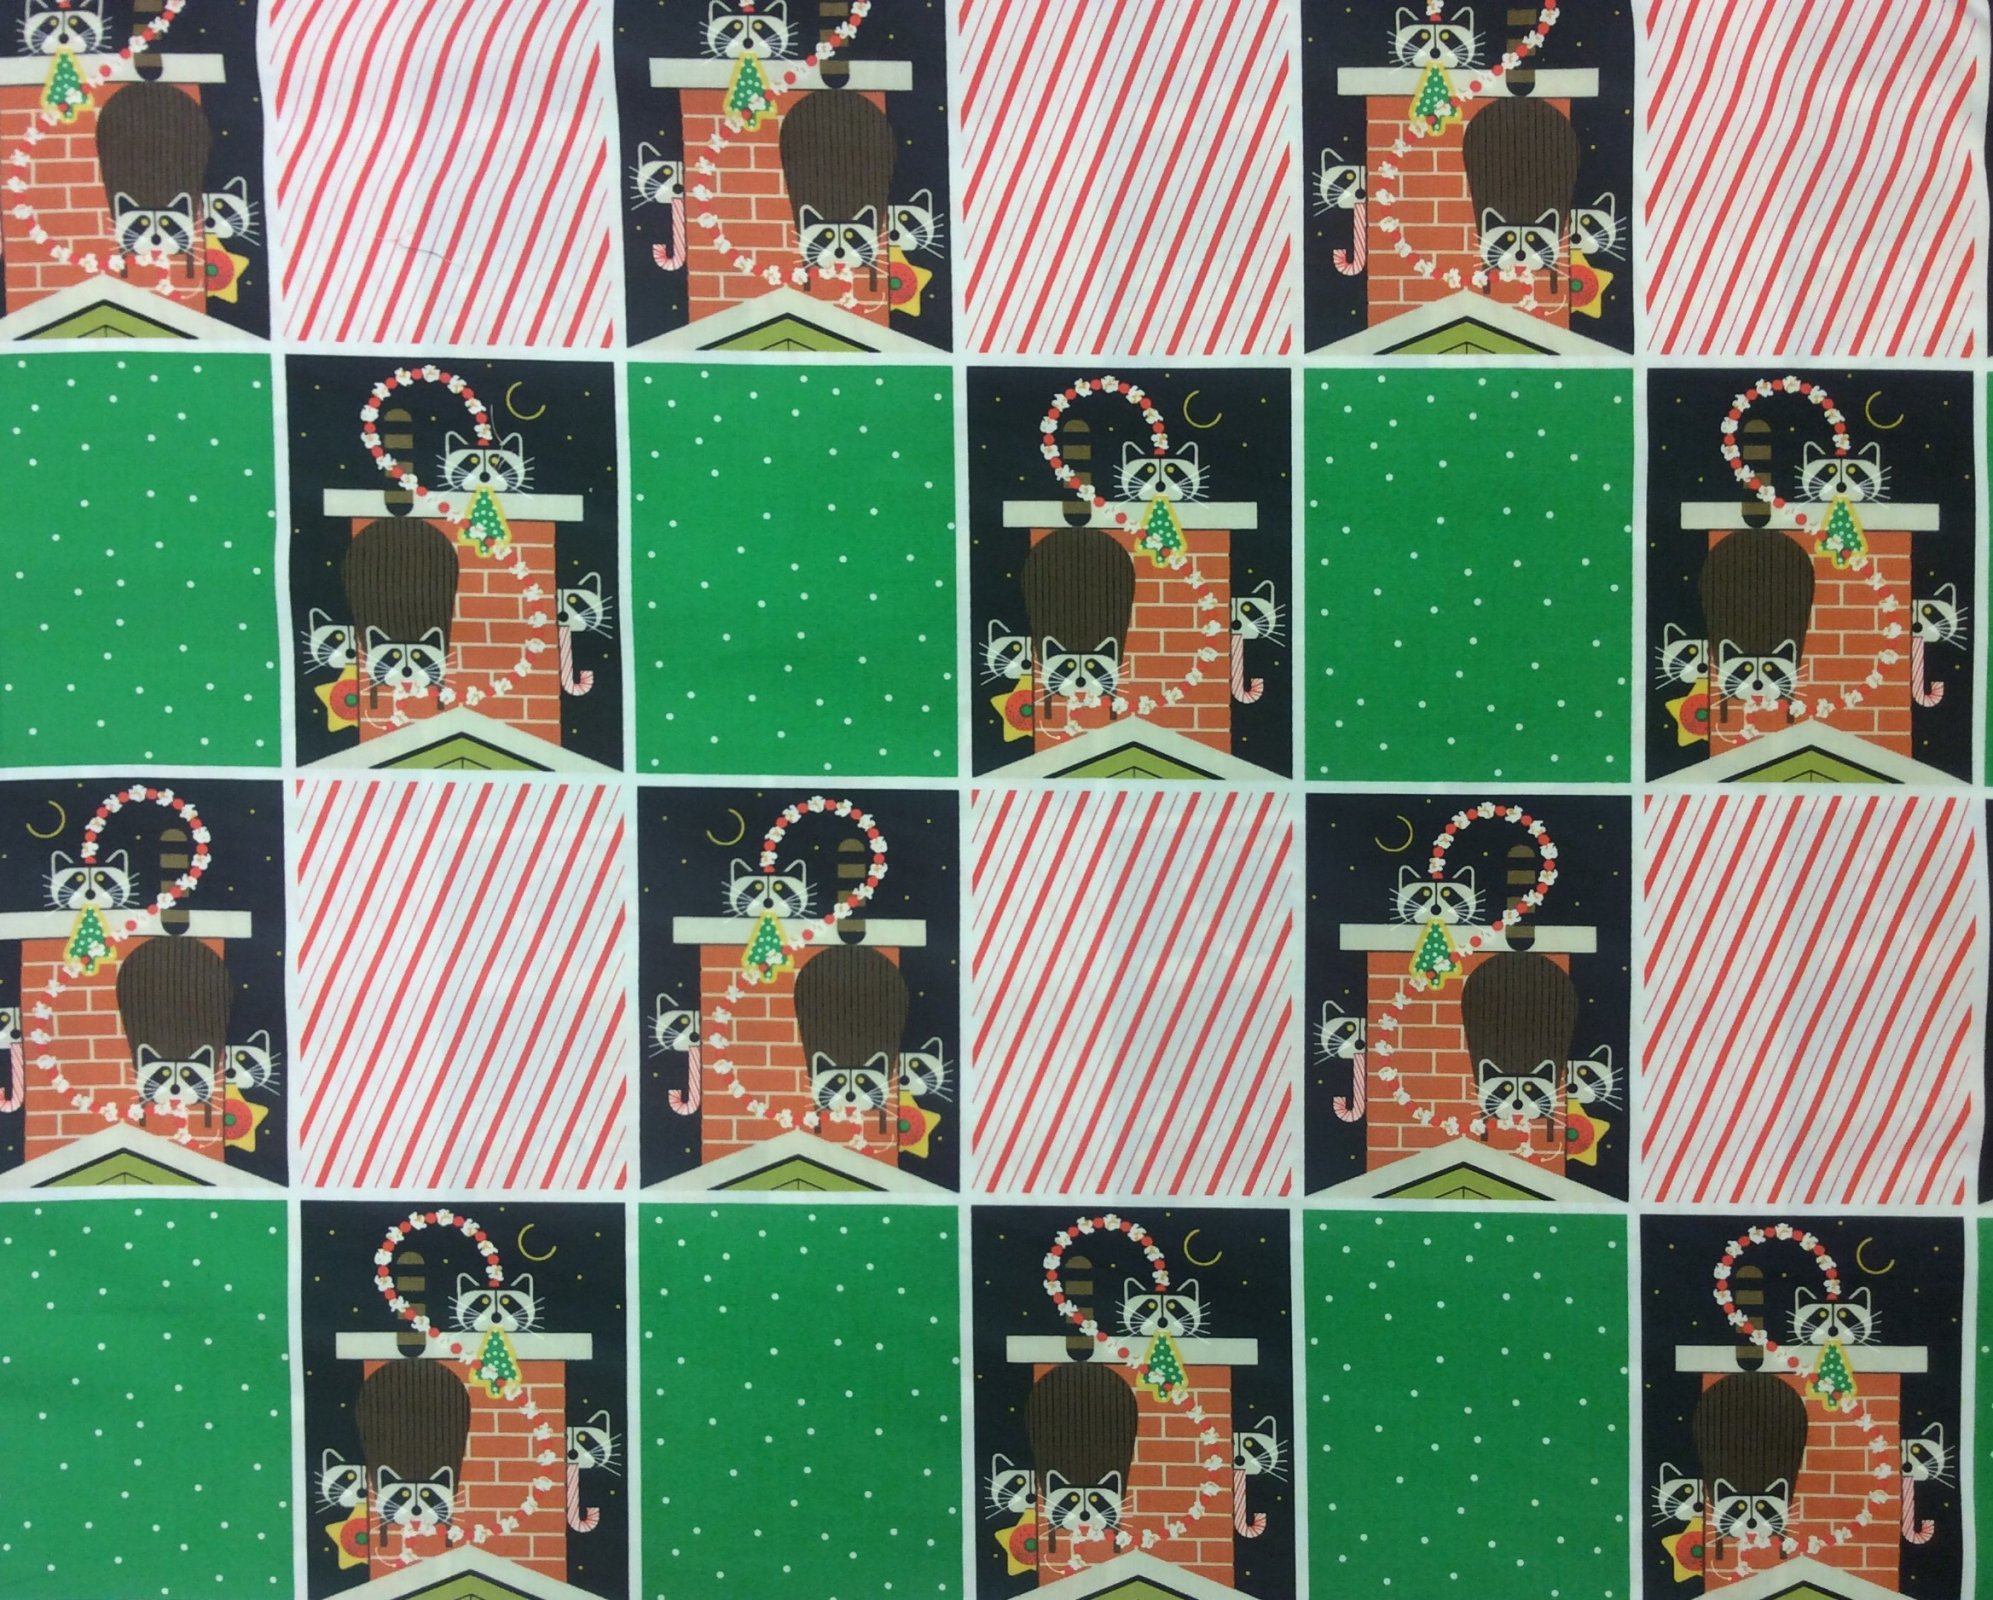 Charley Harper Holiday Chimney Capers Organic Cotton Mid Century Raccoon Winter Holiday Cotton Quilting Fabric CHB99